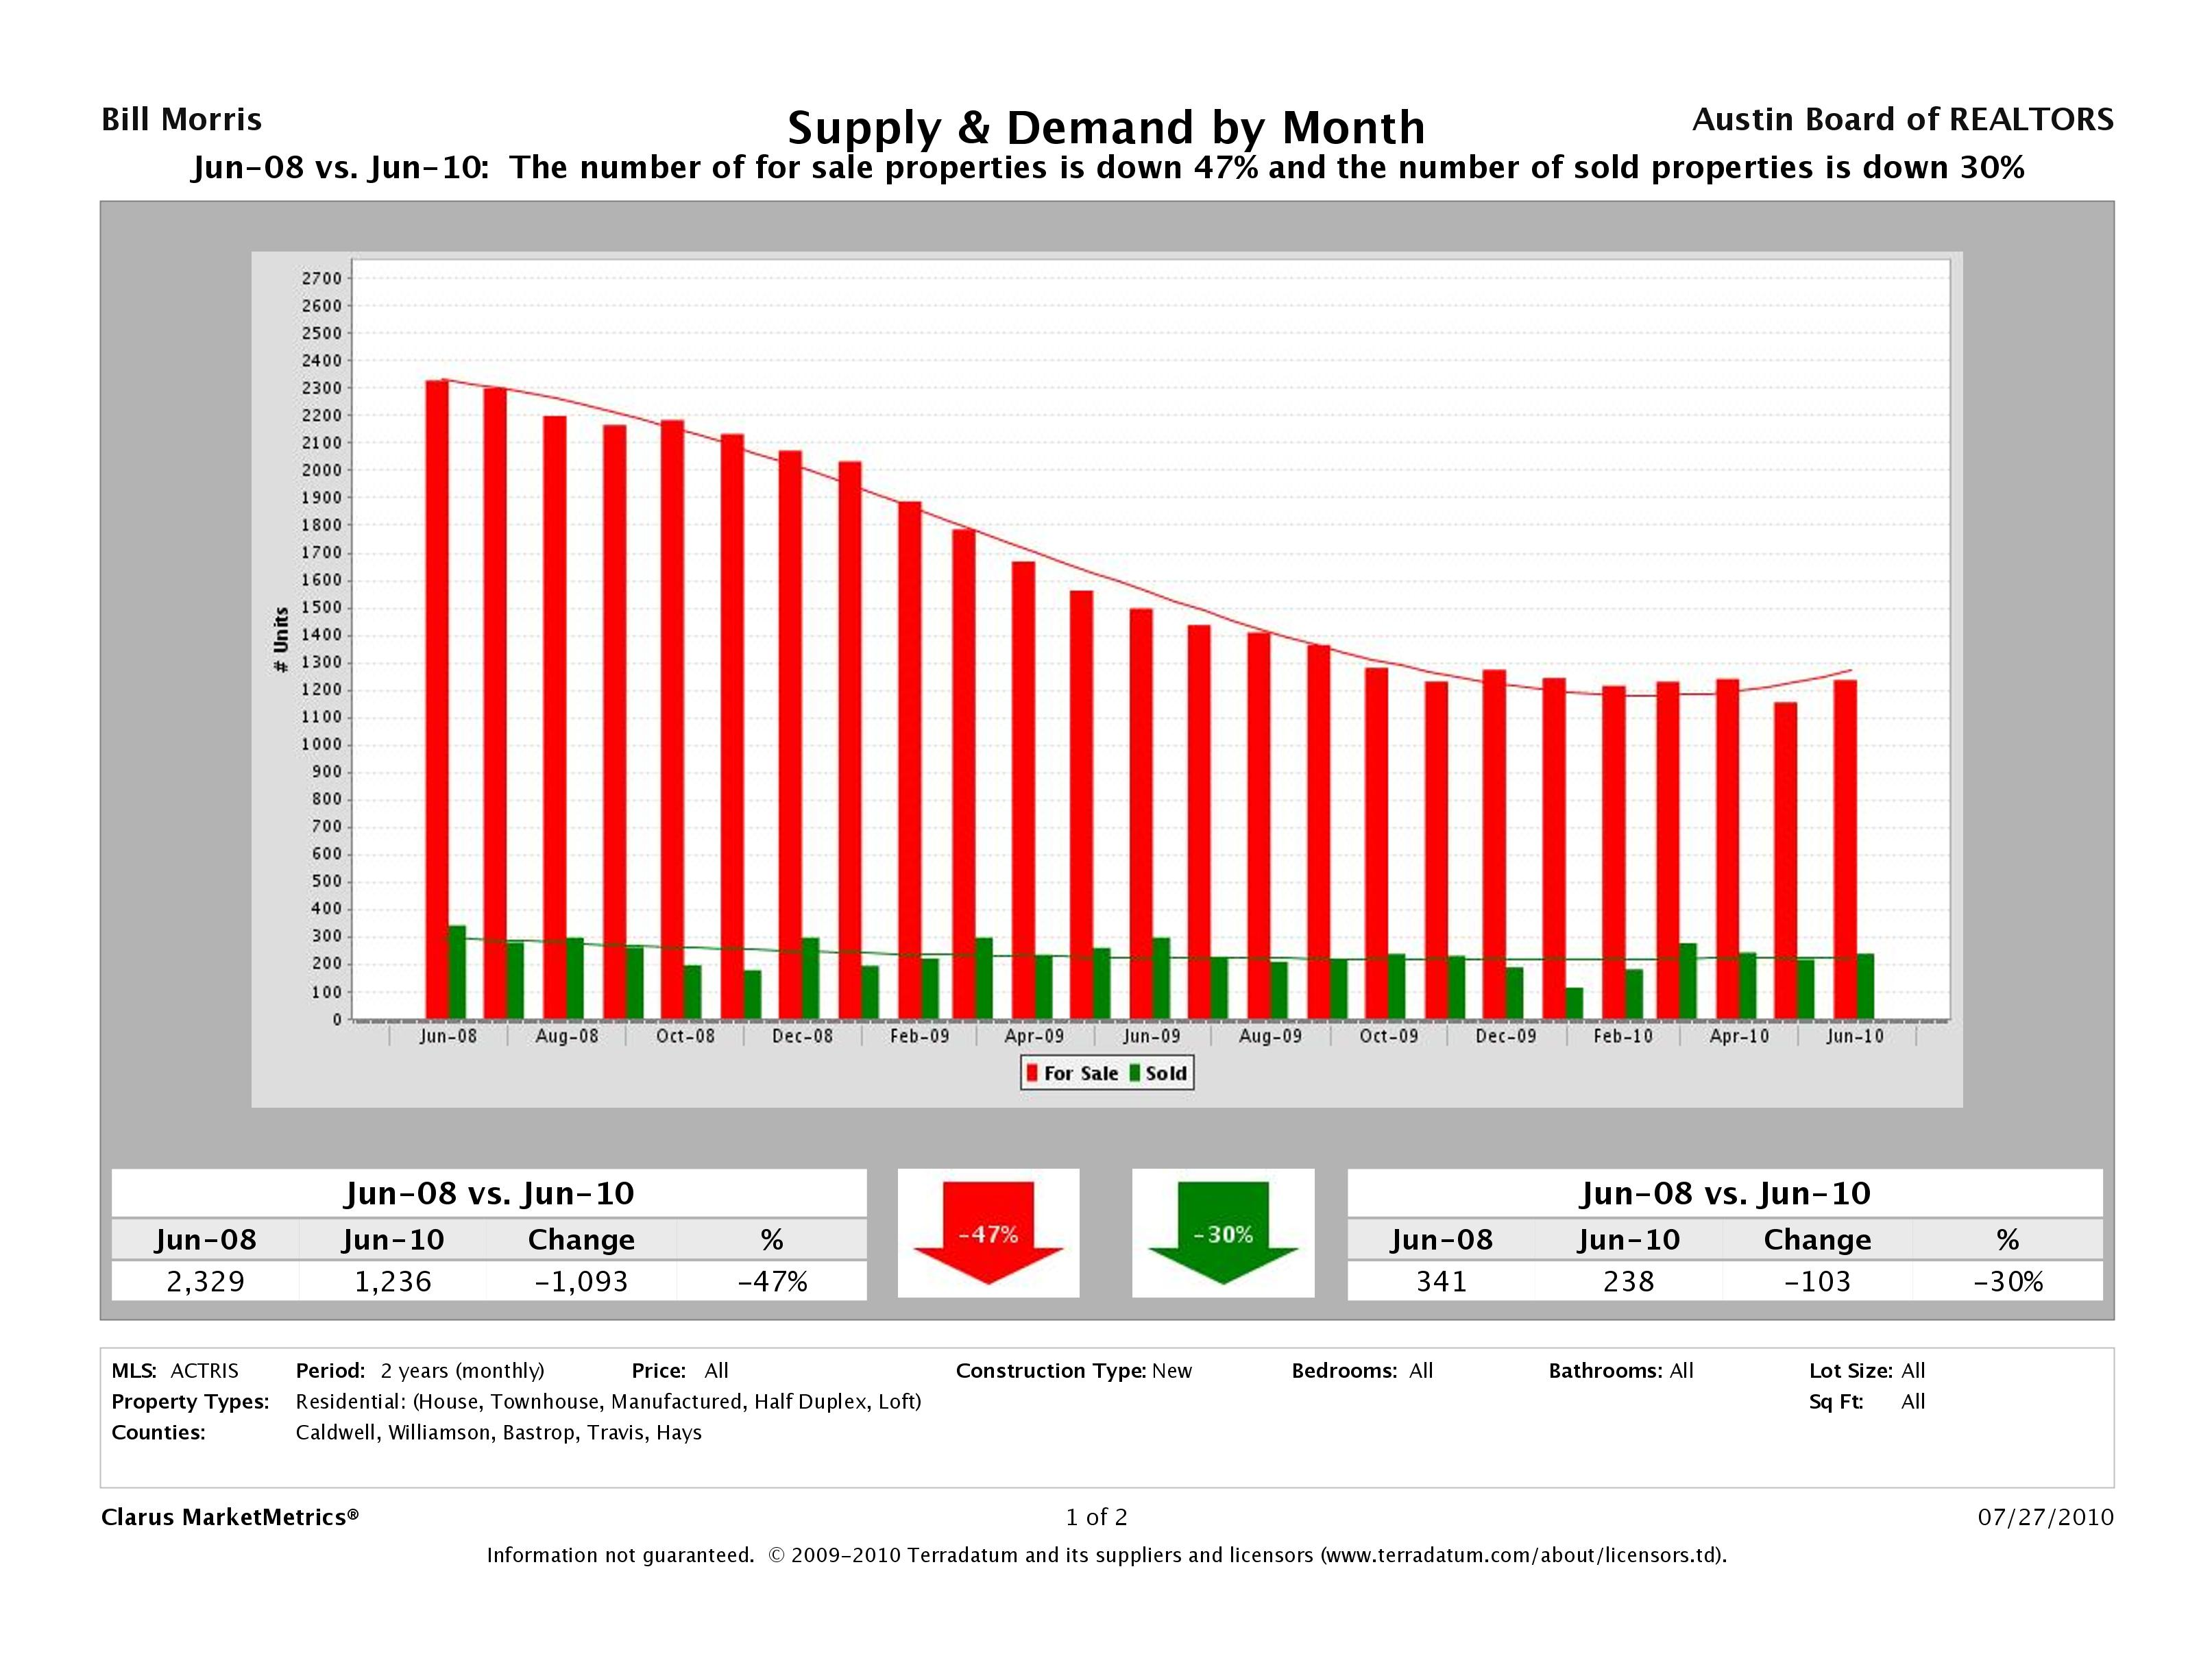 Austin New Home Supply and Demand June 2008 - June 2010